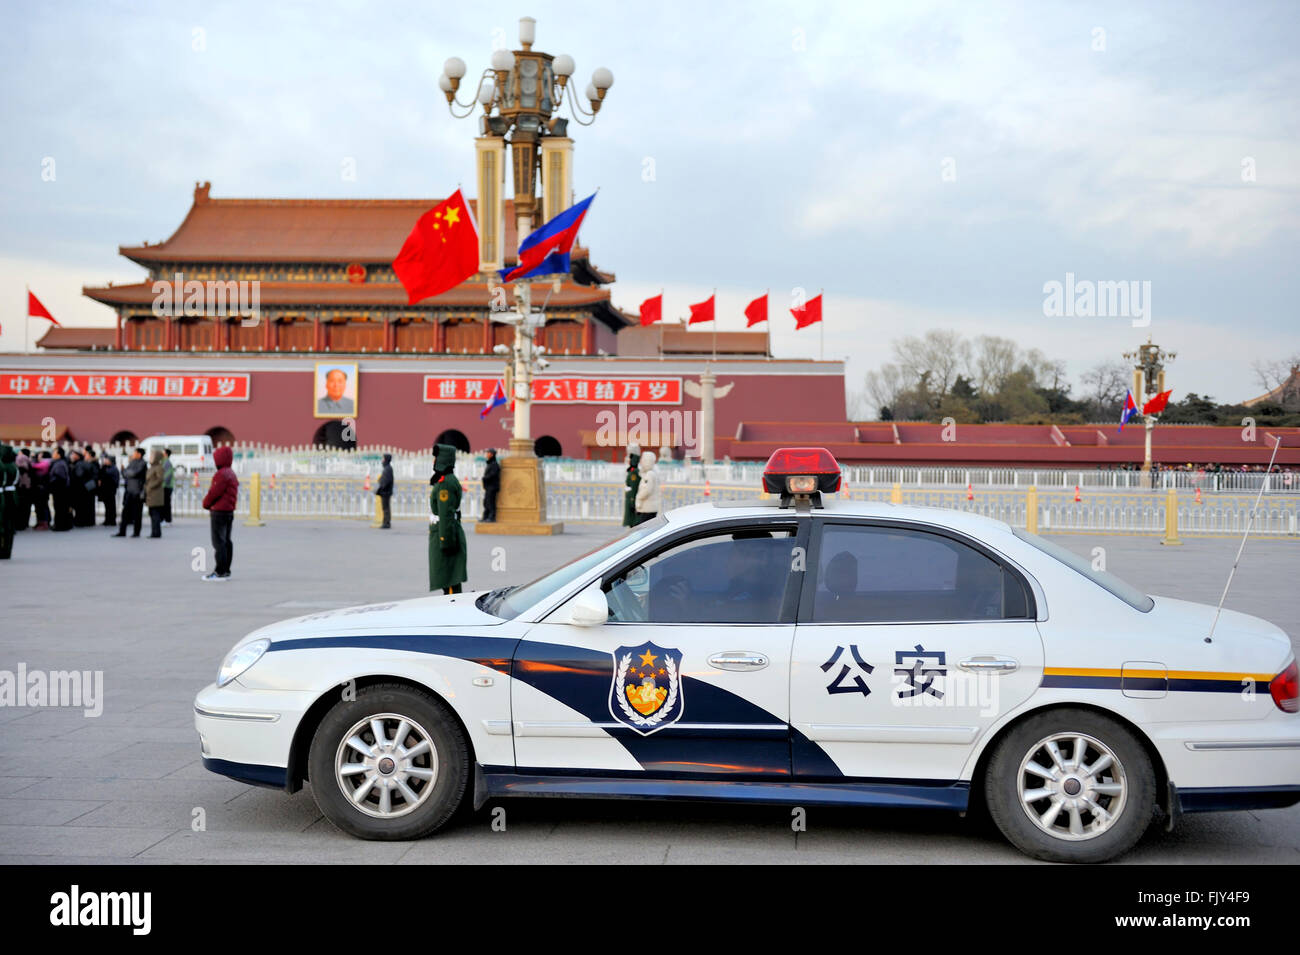 Police car at Tian'Anmen square,Beijing,China - Stock Image